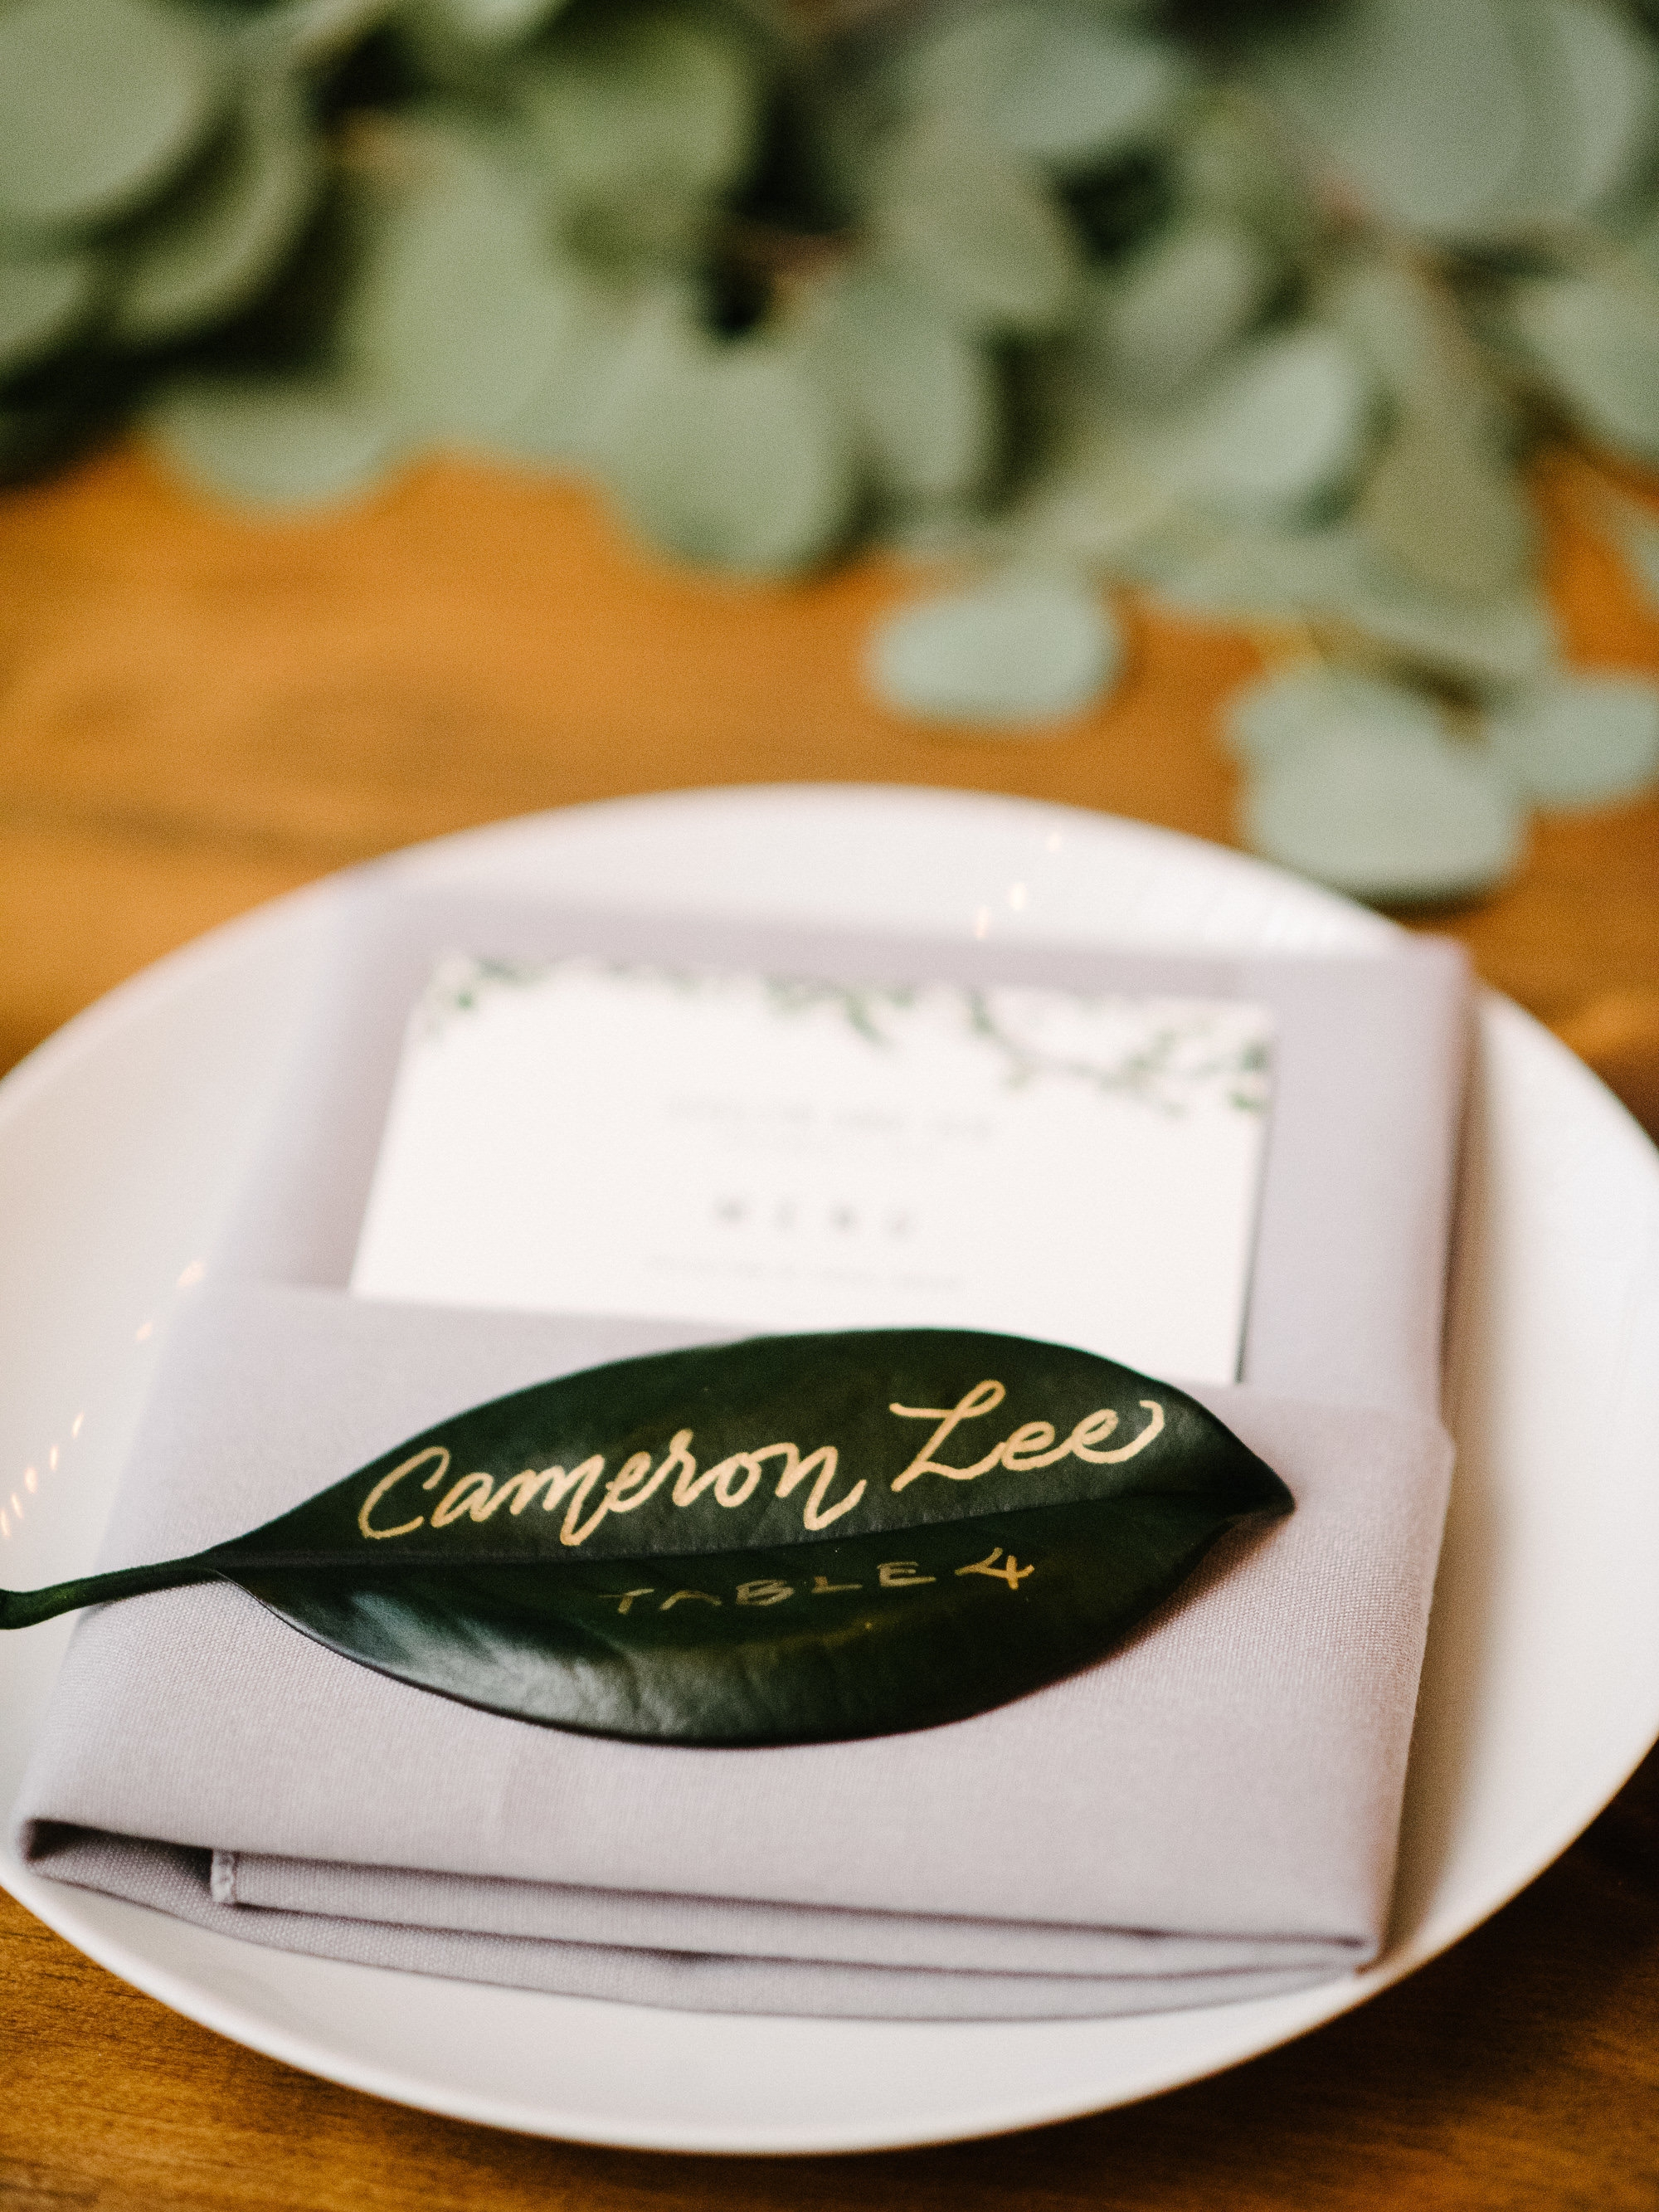 Magnolia leaves escort cards and place cards by www.chavelli.com // photo by www.lisahibbert.com